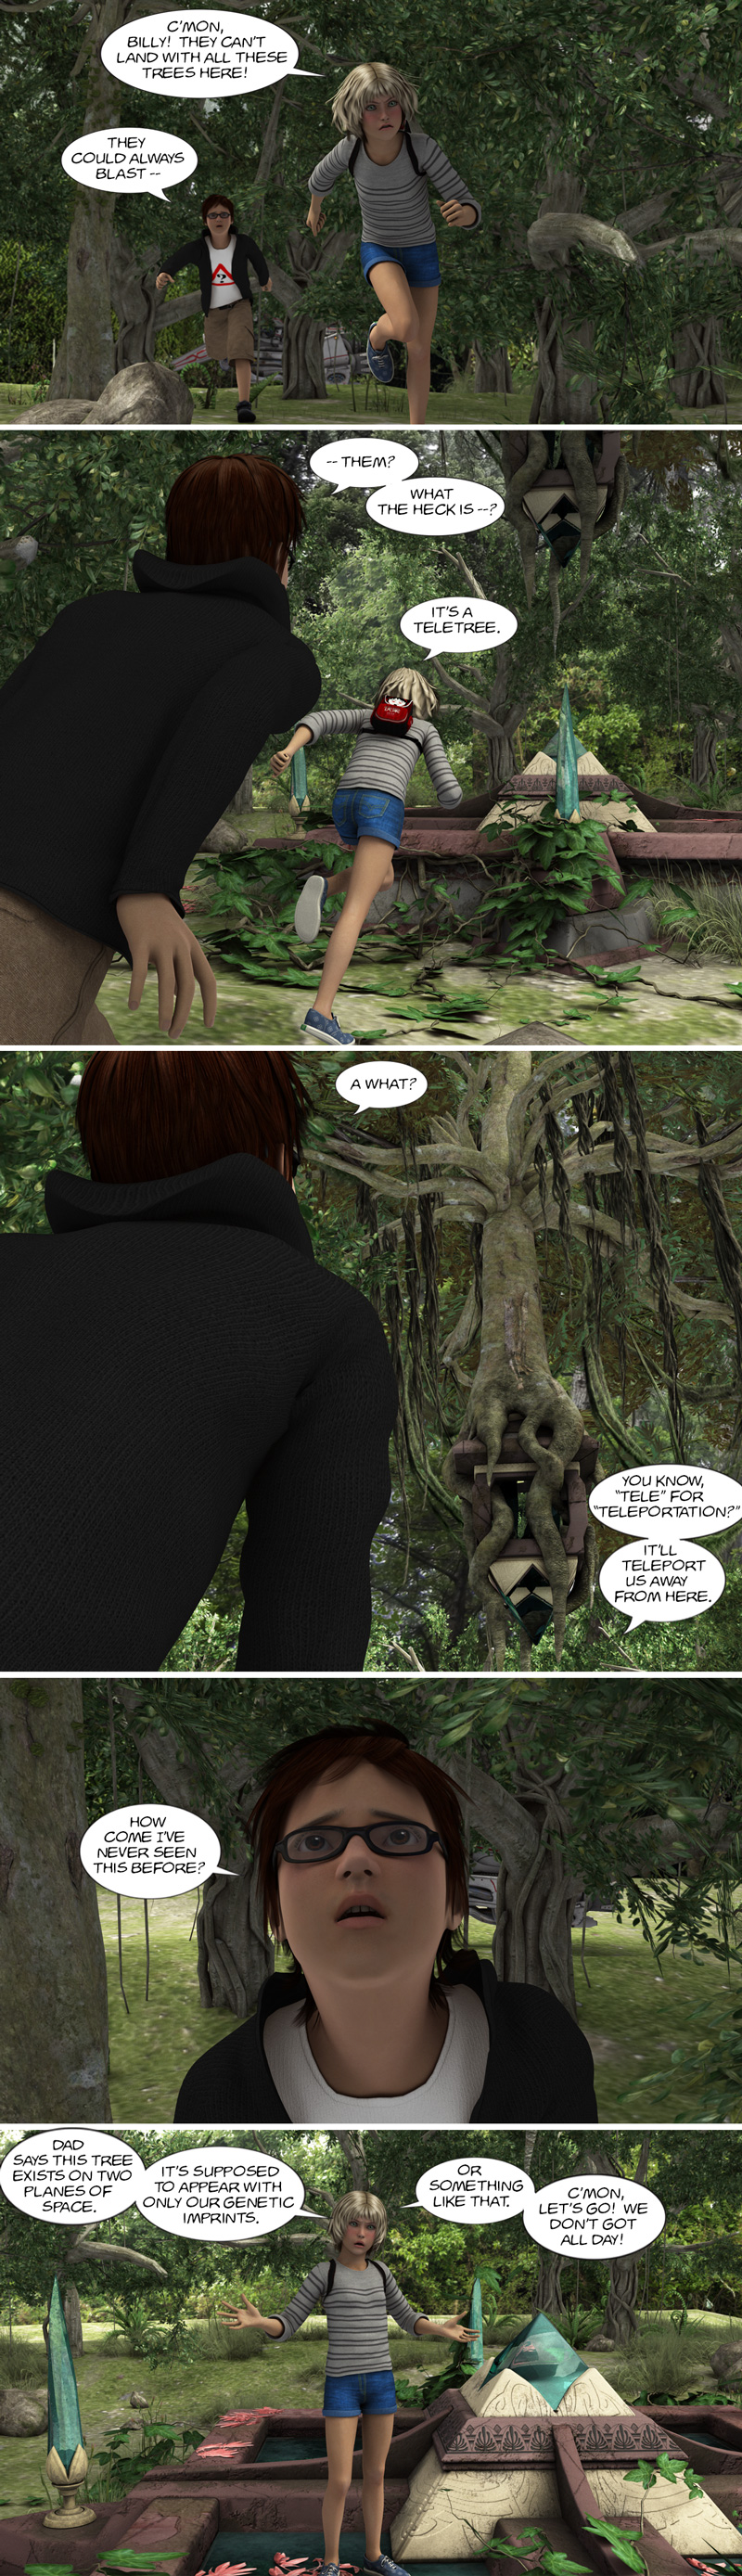 Chapter 11, page 33